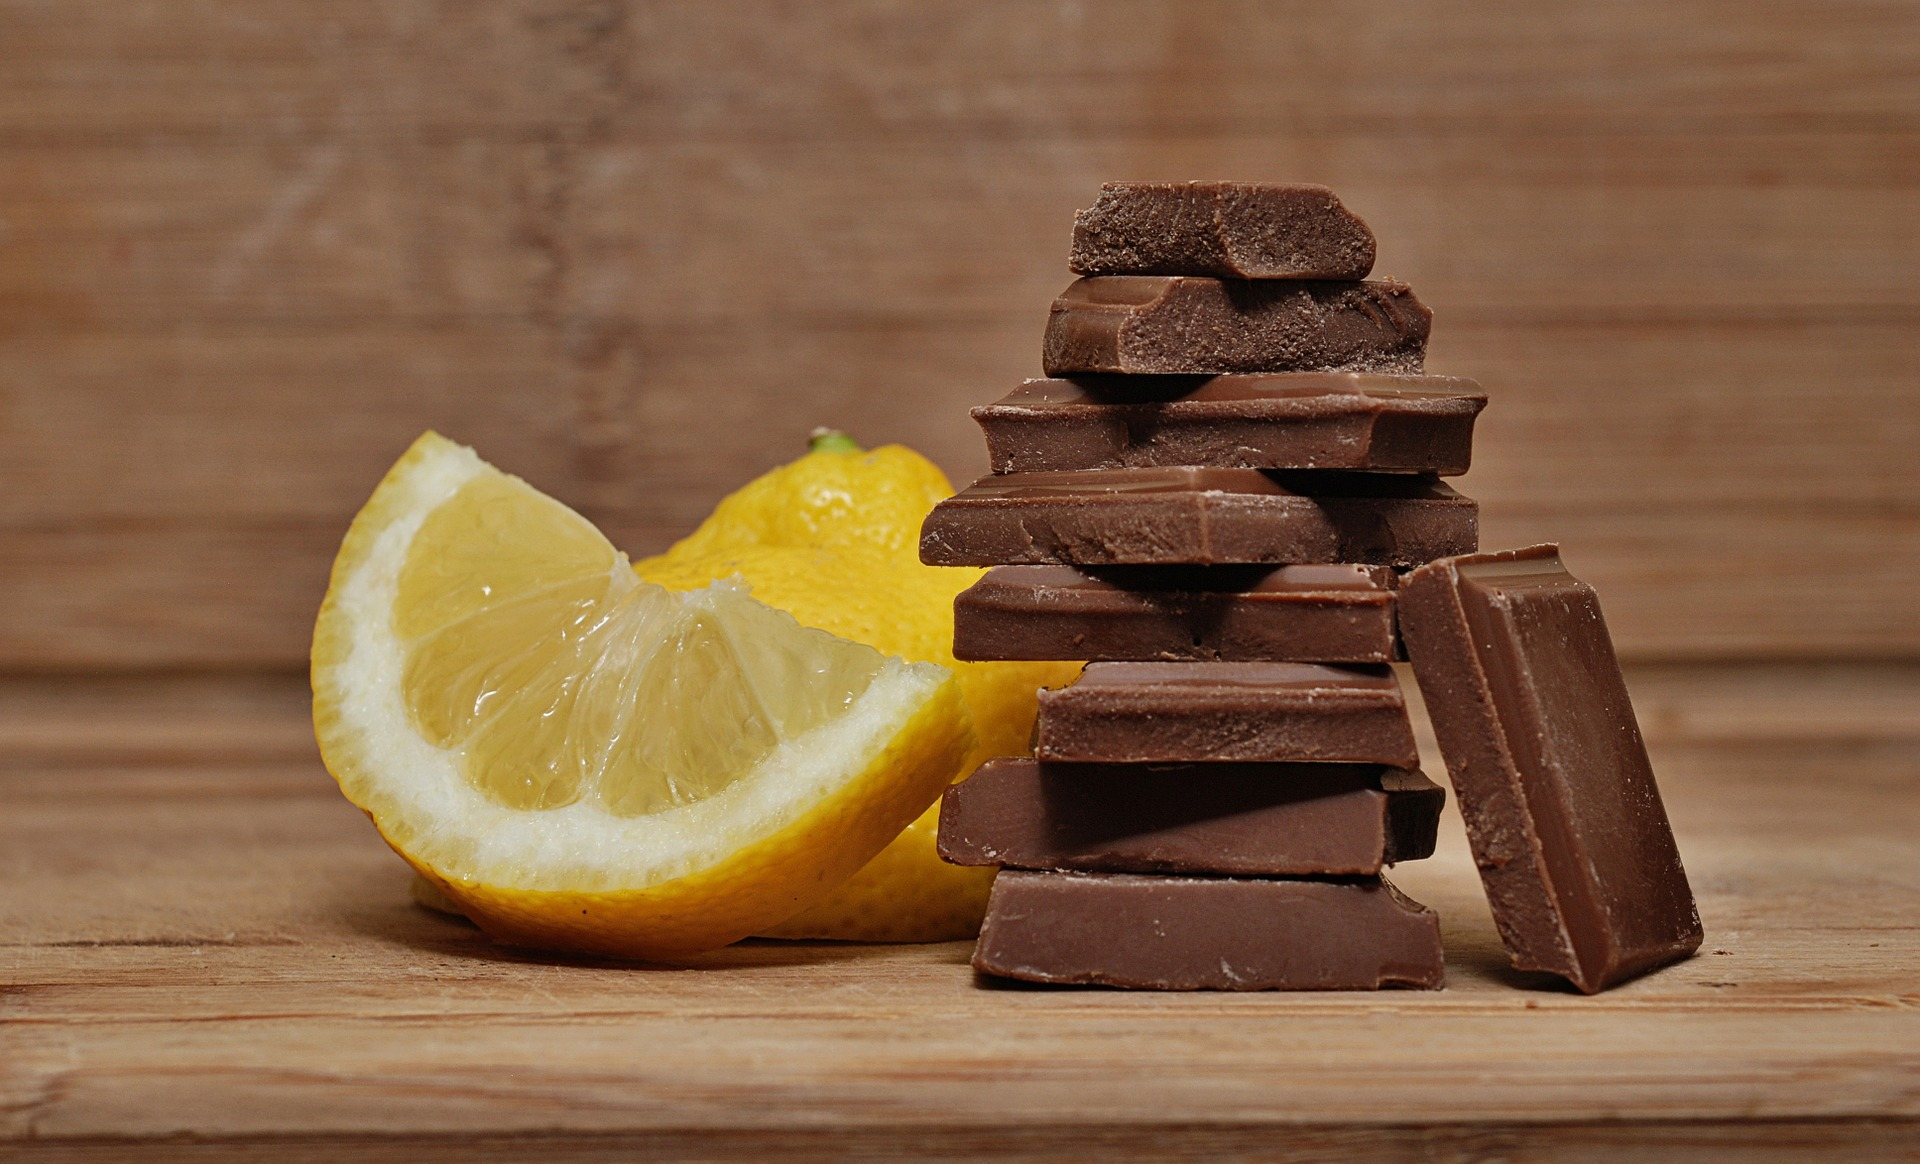 Disruption in the chocolate market